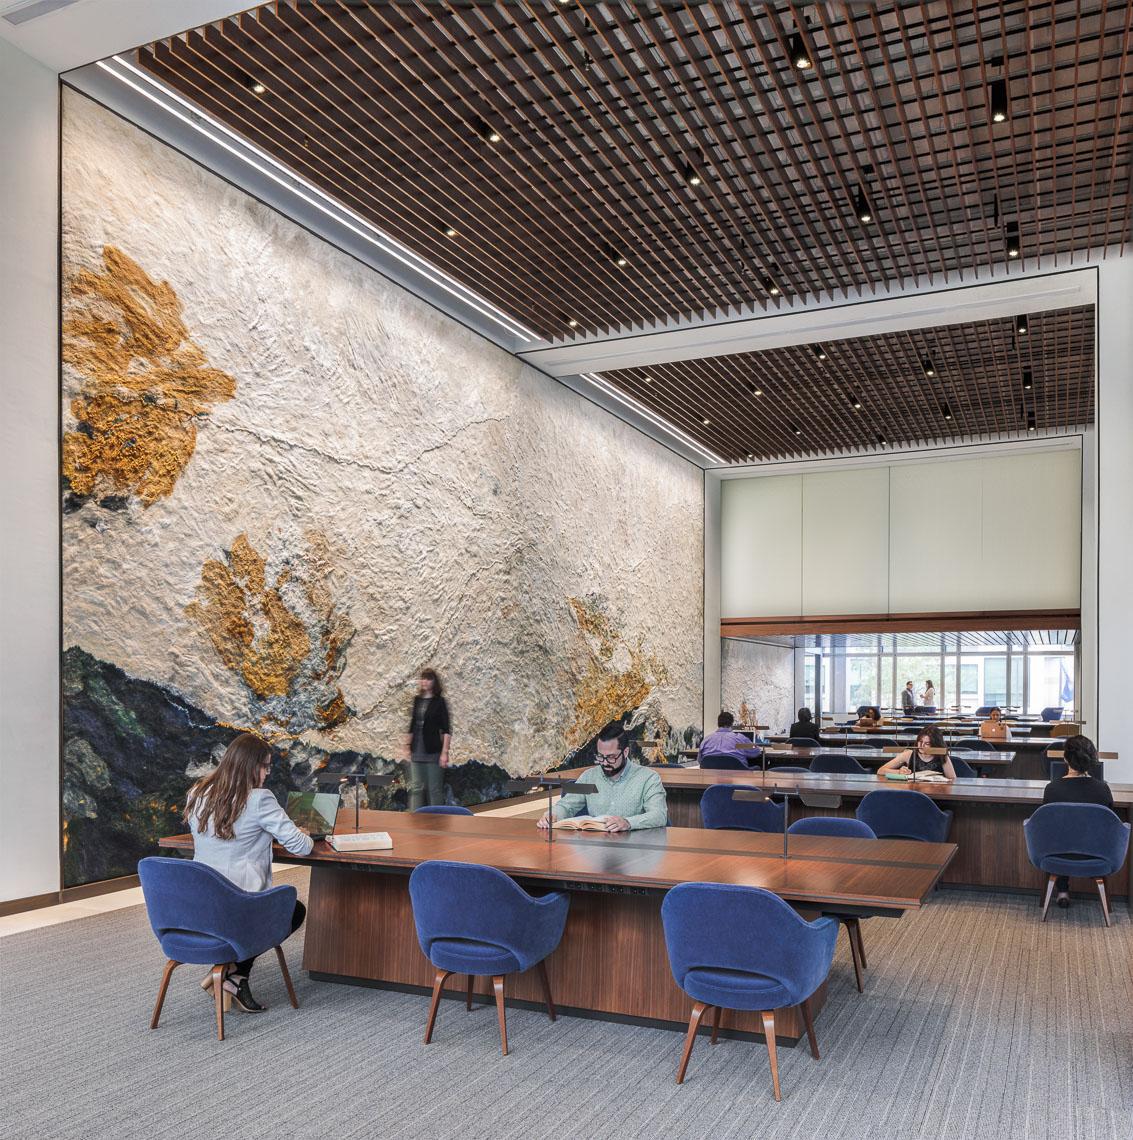 UPenn Moelis Family Grand Reading Room by Gensler photographed by Brad Feinknopf based in Columbus, Ohio